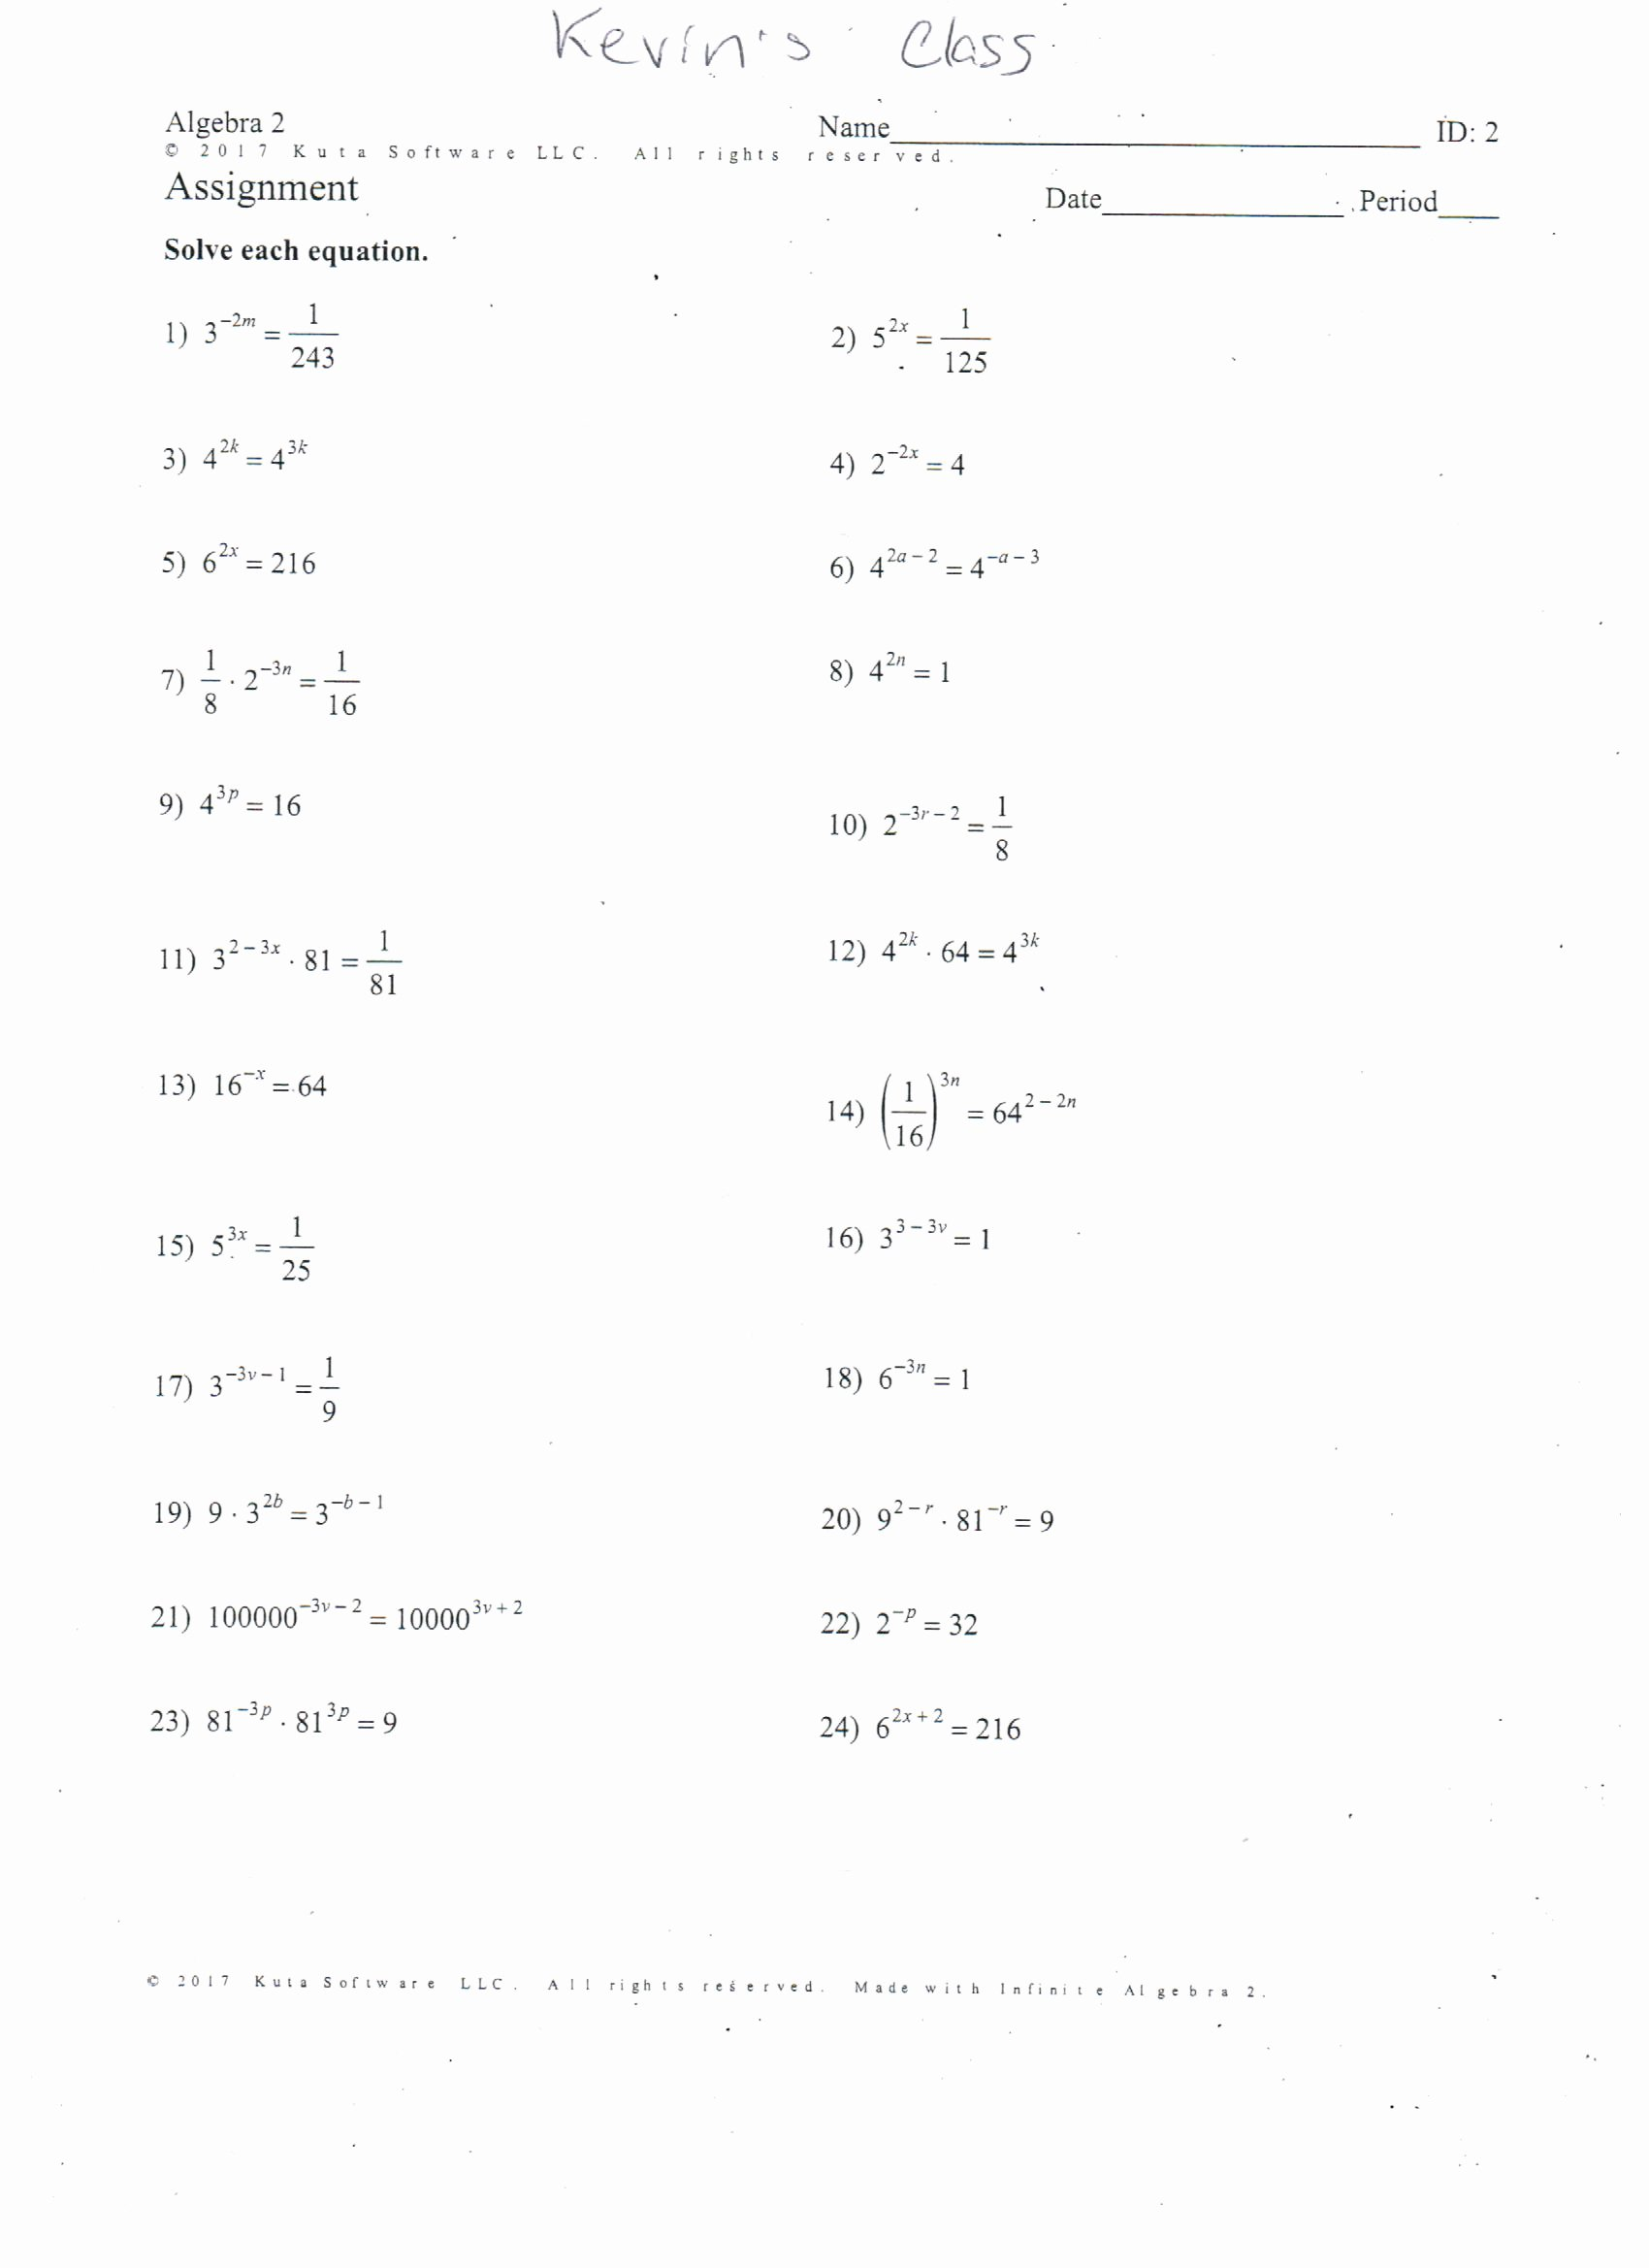 Factoring Quadratic Expressions Worksheet Answers Inspirational solving Quadratic Equations by Factoring Worksheet Answers